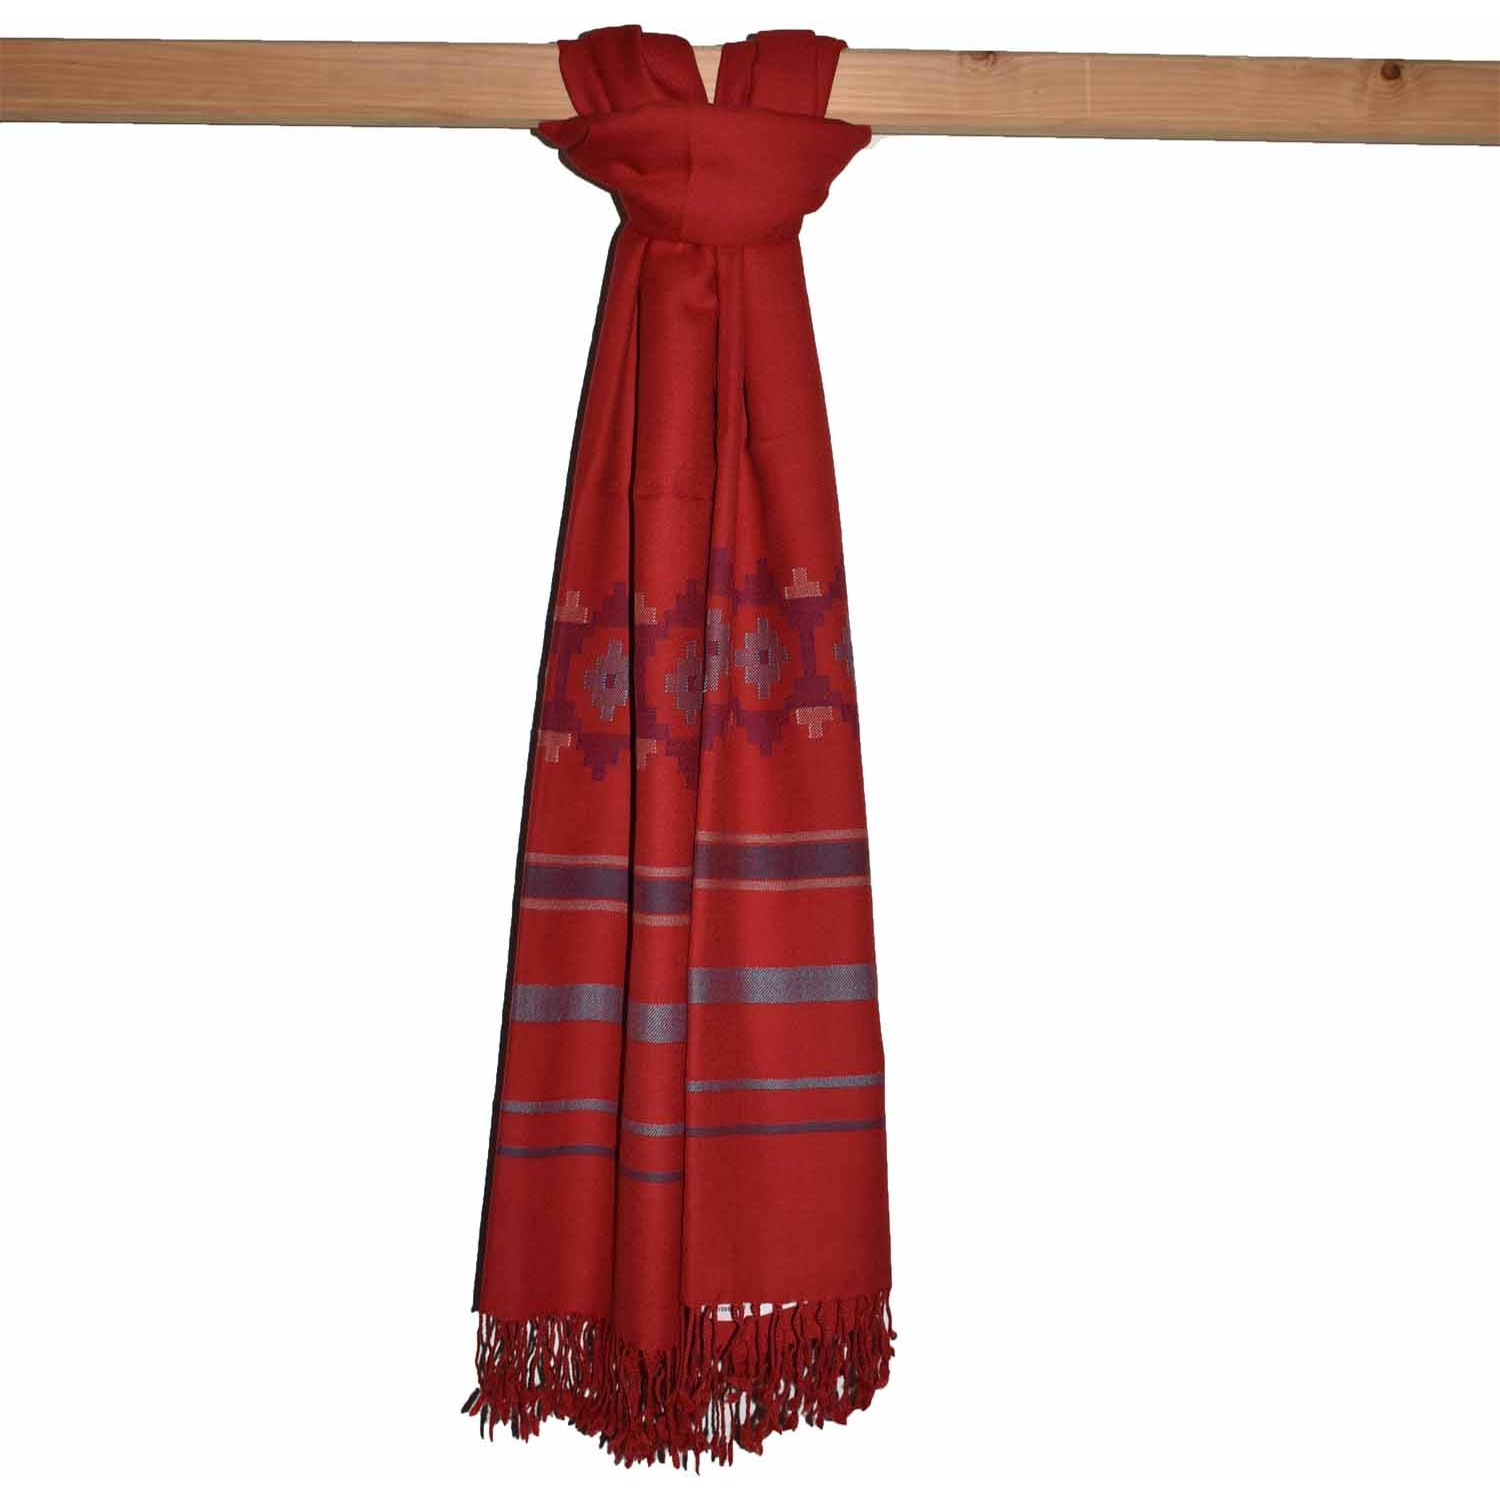 Shawl-Art1 100% Handloom Woolen Shawl 2/72 Red